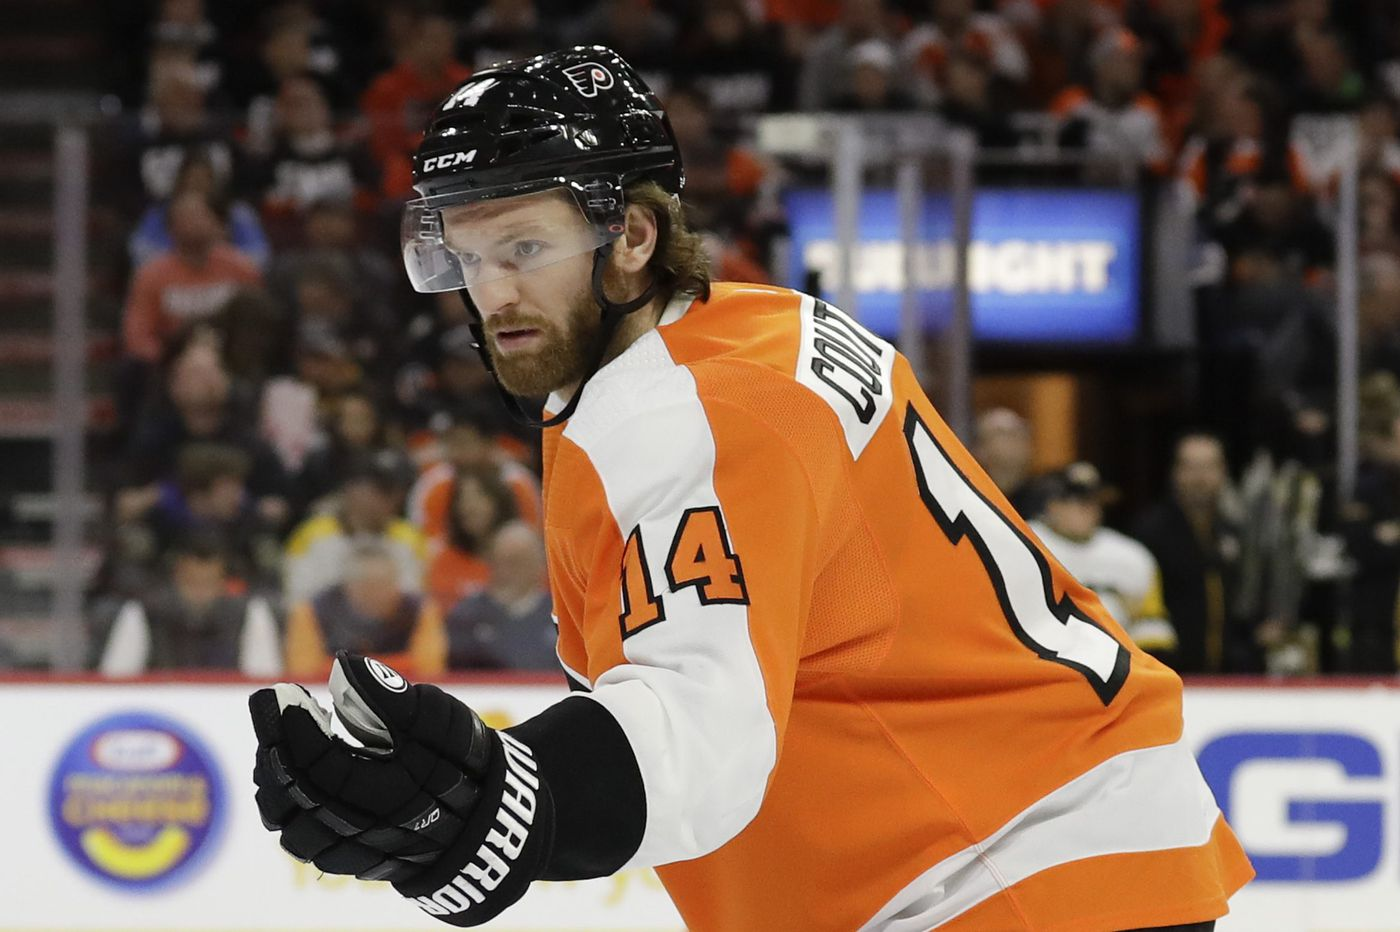 Flyers' Sean Couturier making strides in recovery